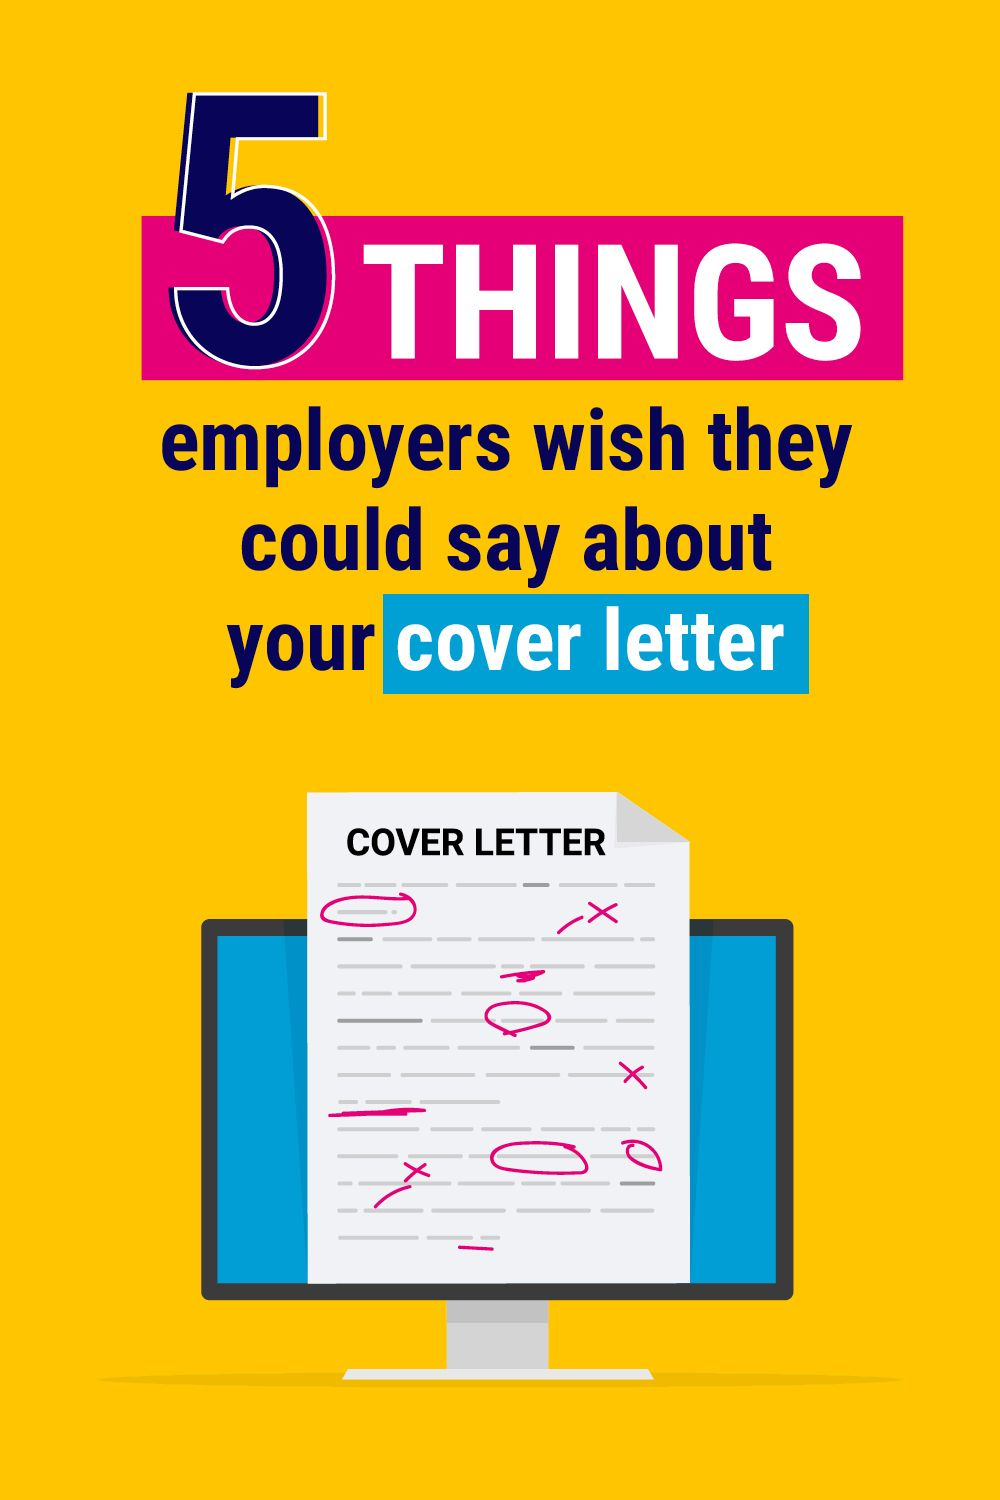 Employers wish they could say this. Cover letter for